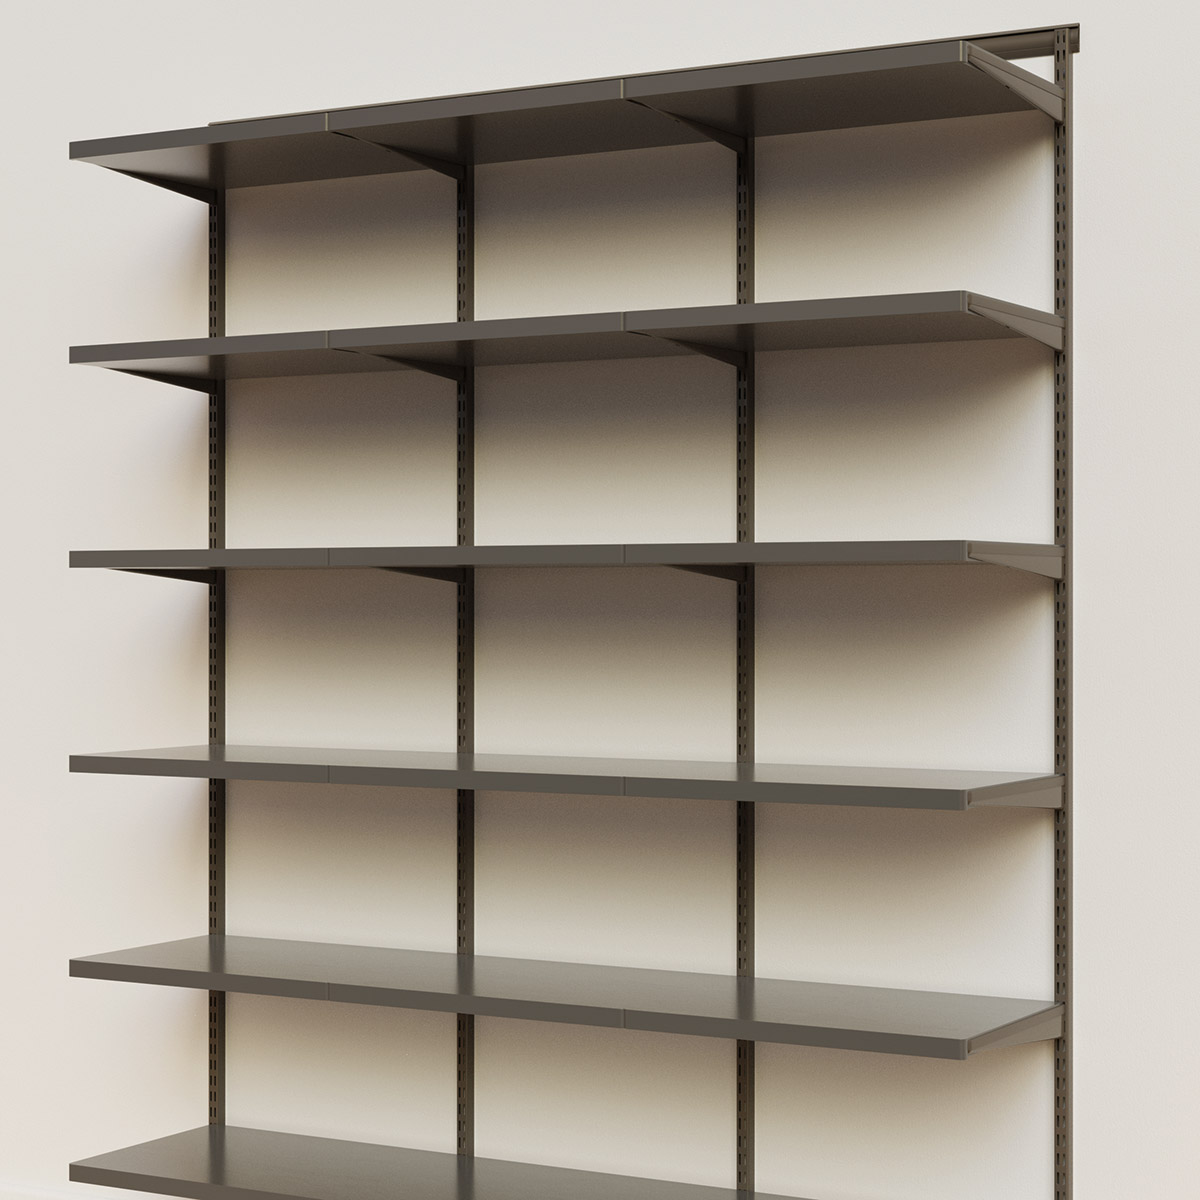 Elfa Décor 6' Graphite & Grey Basic Shelving Units for Anywhere